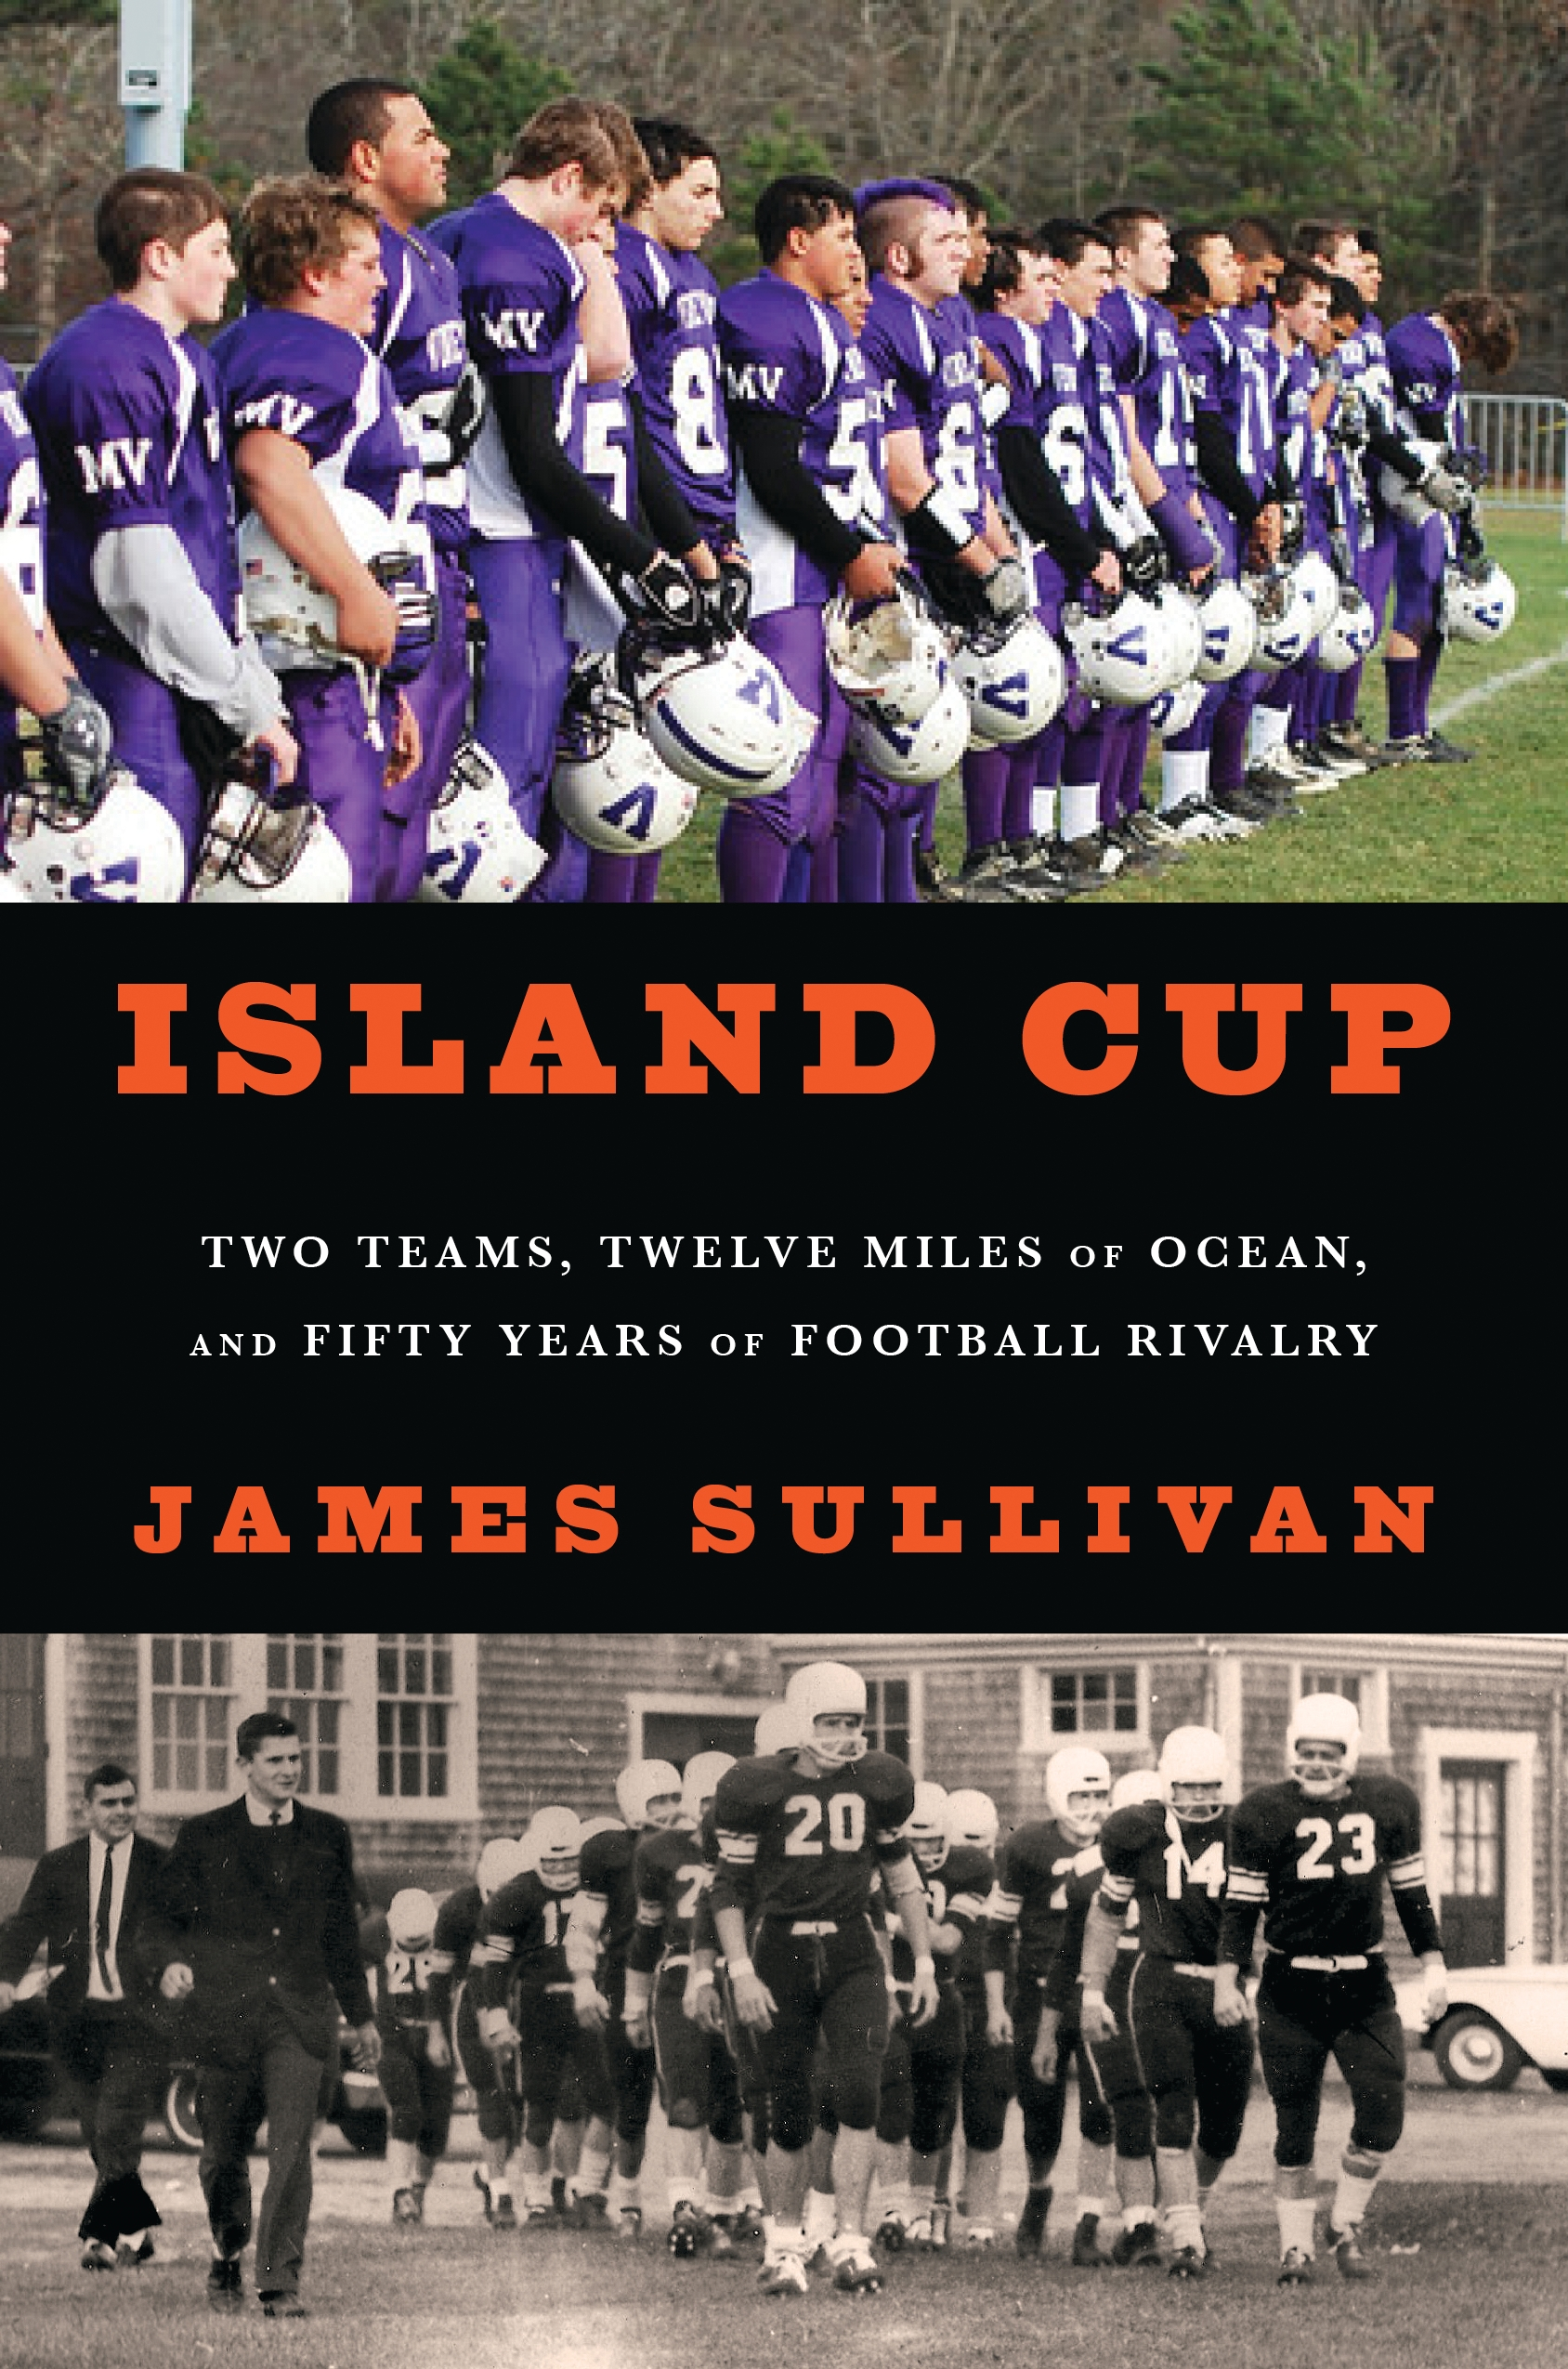 Island Cup Two Teams,  Twelve Miles of Ocean,  and Fifty Years of Football Rivalry